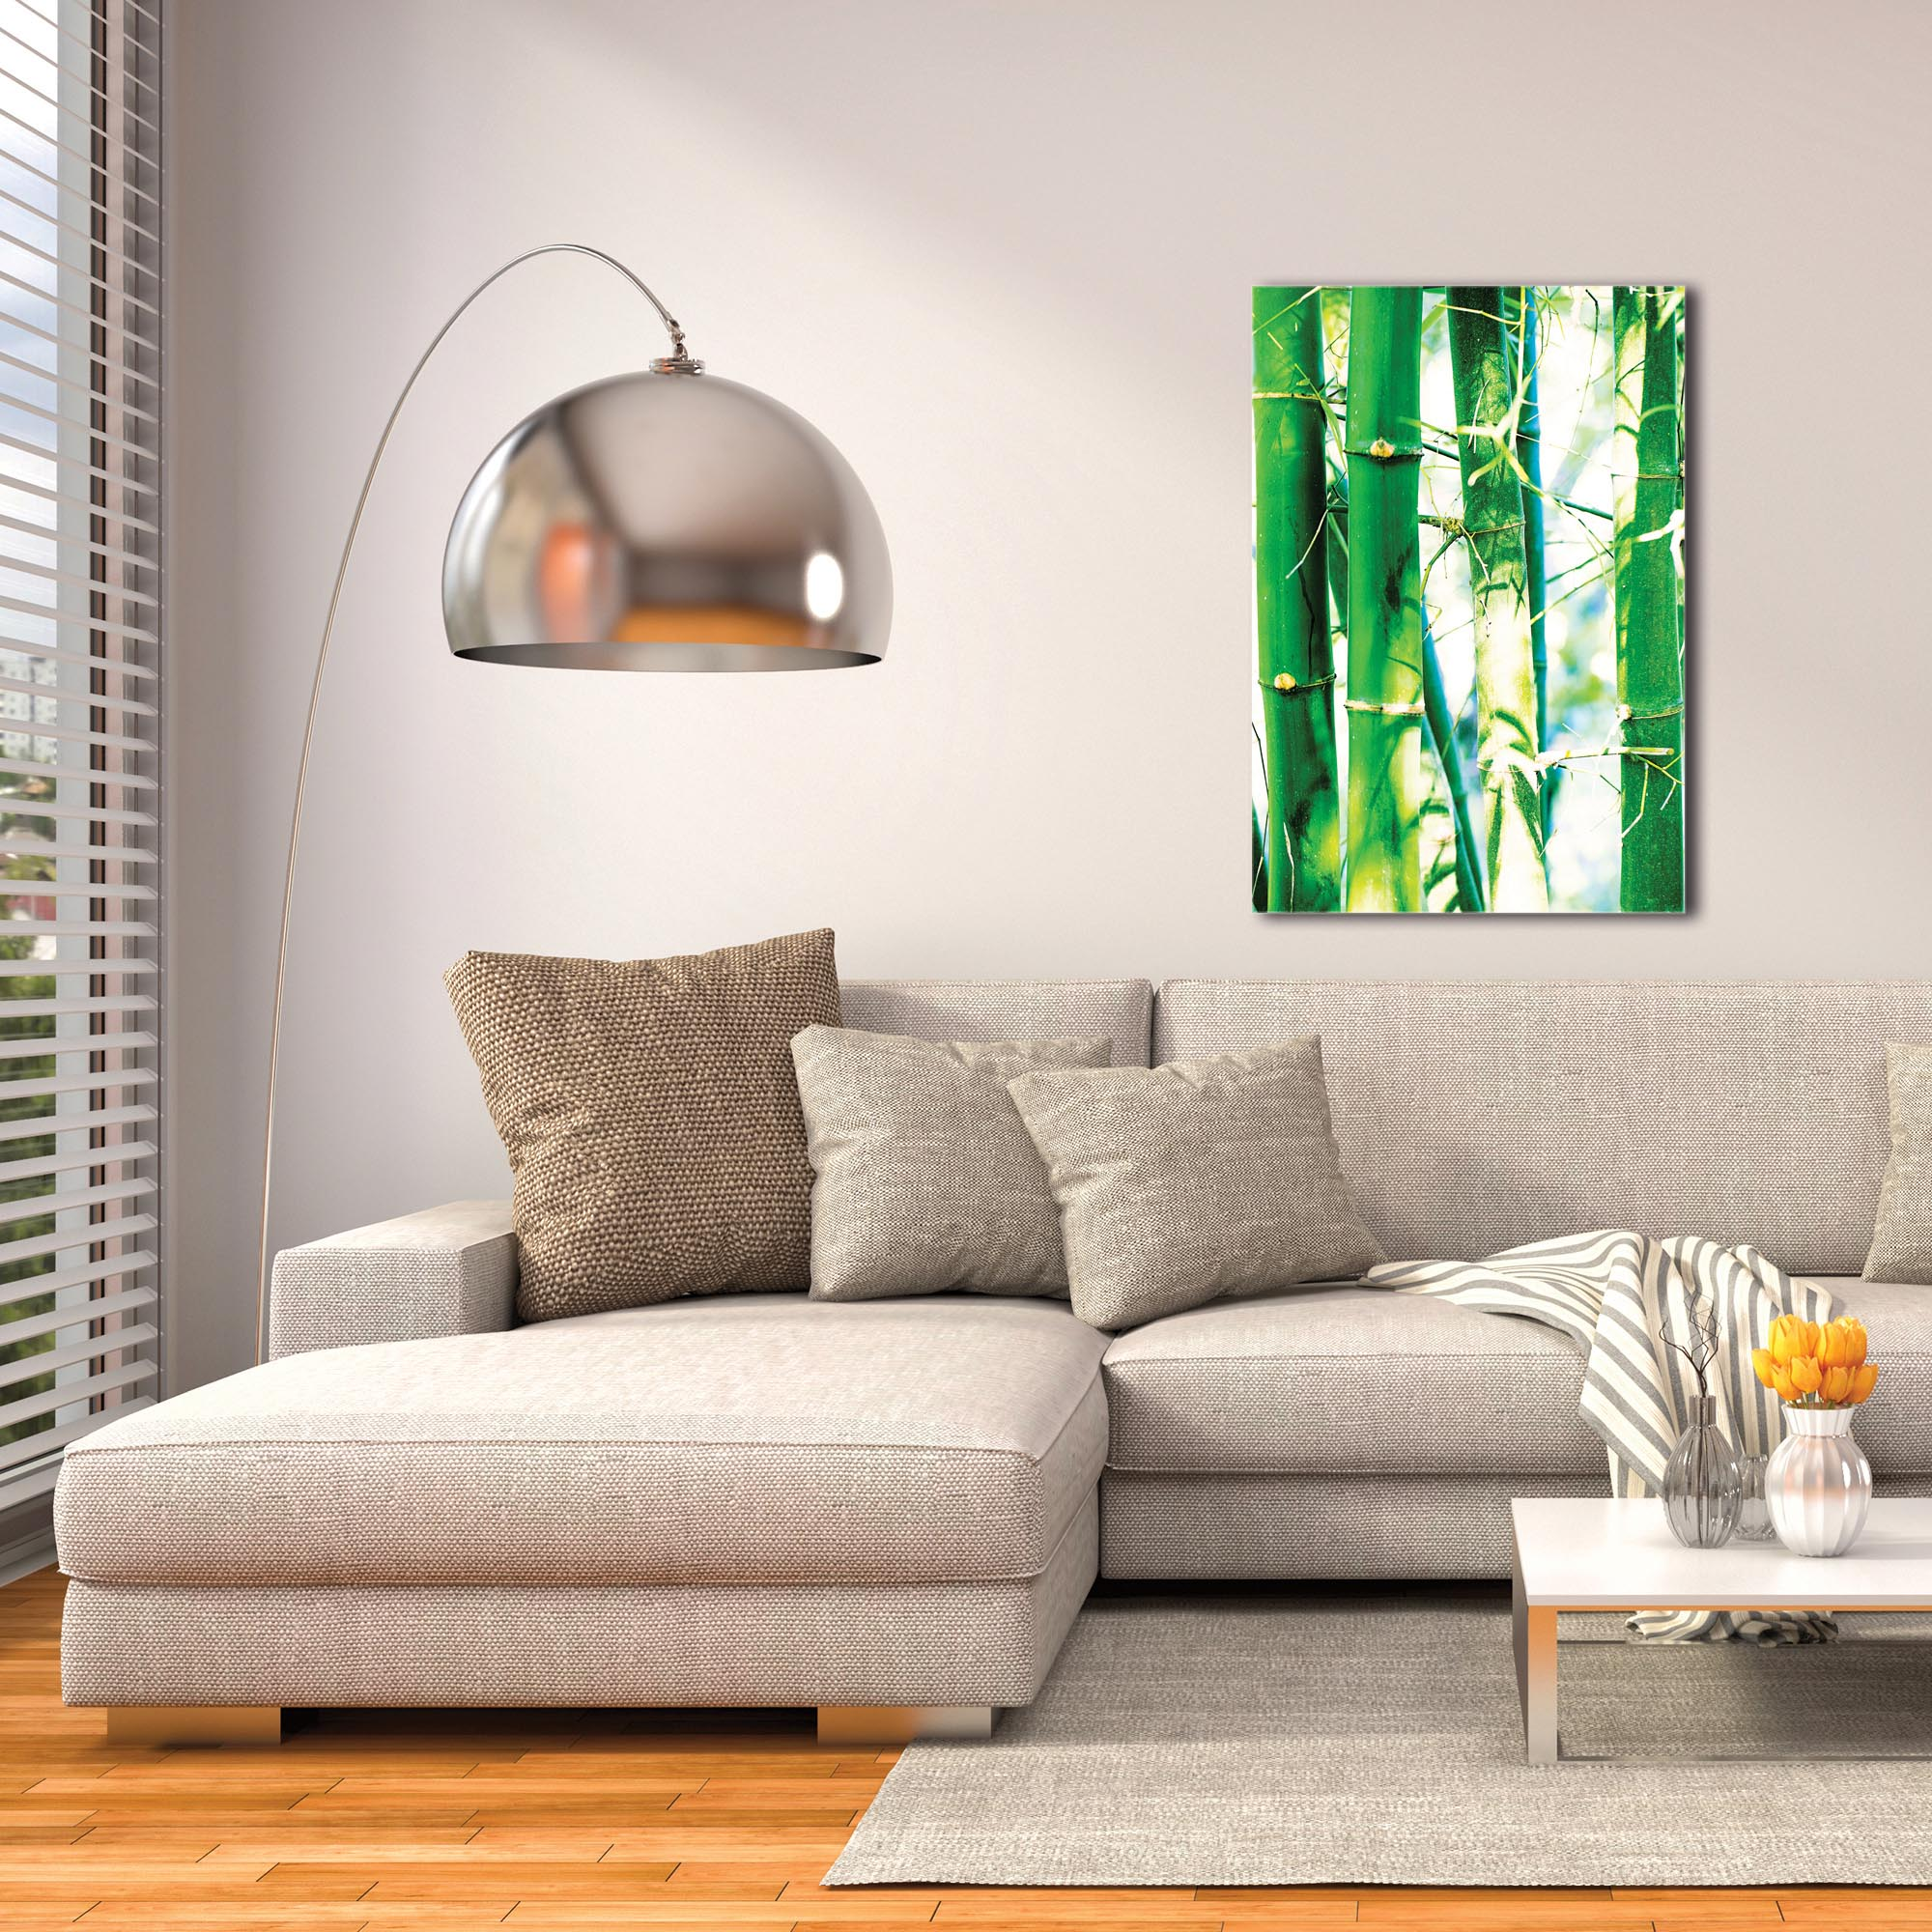 Asian Wall Art 'Bamboo Heights' - Bamboo Decor on Metal or Plexiglass - Image 3